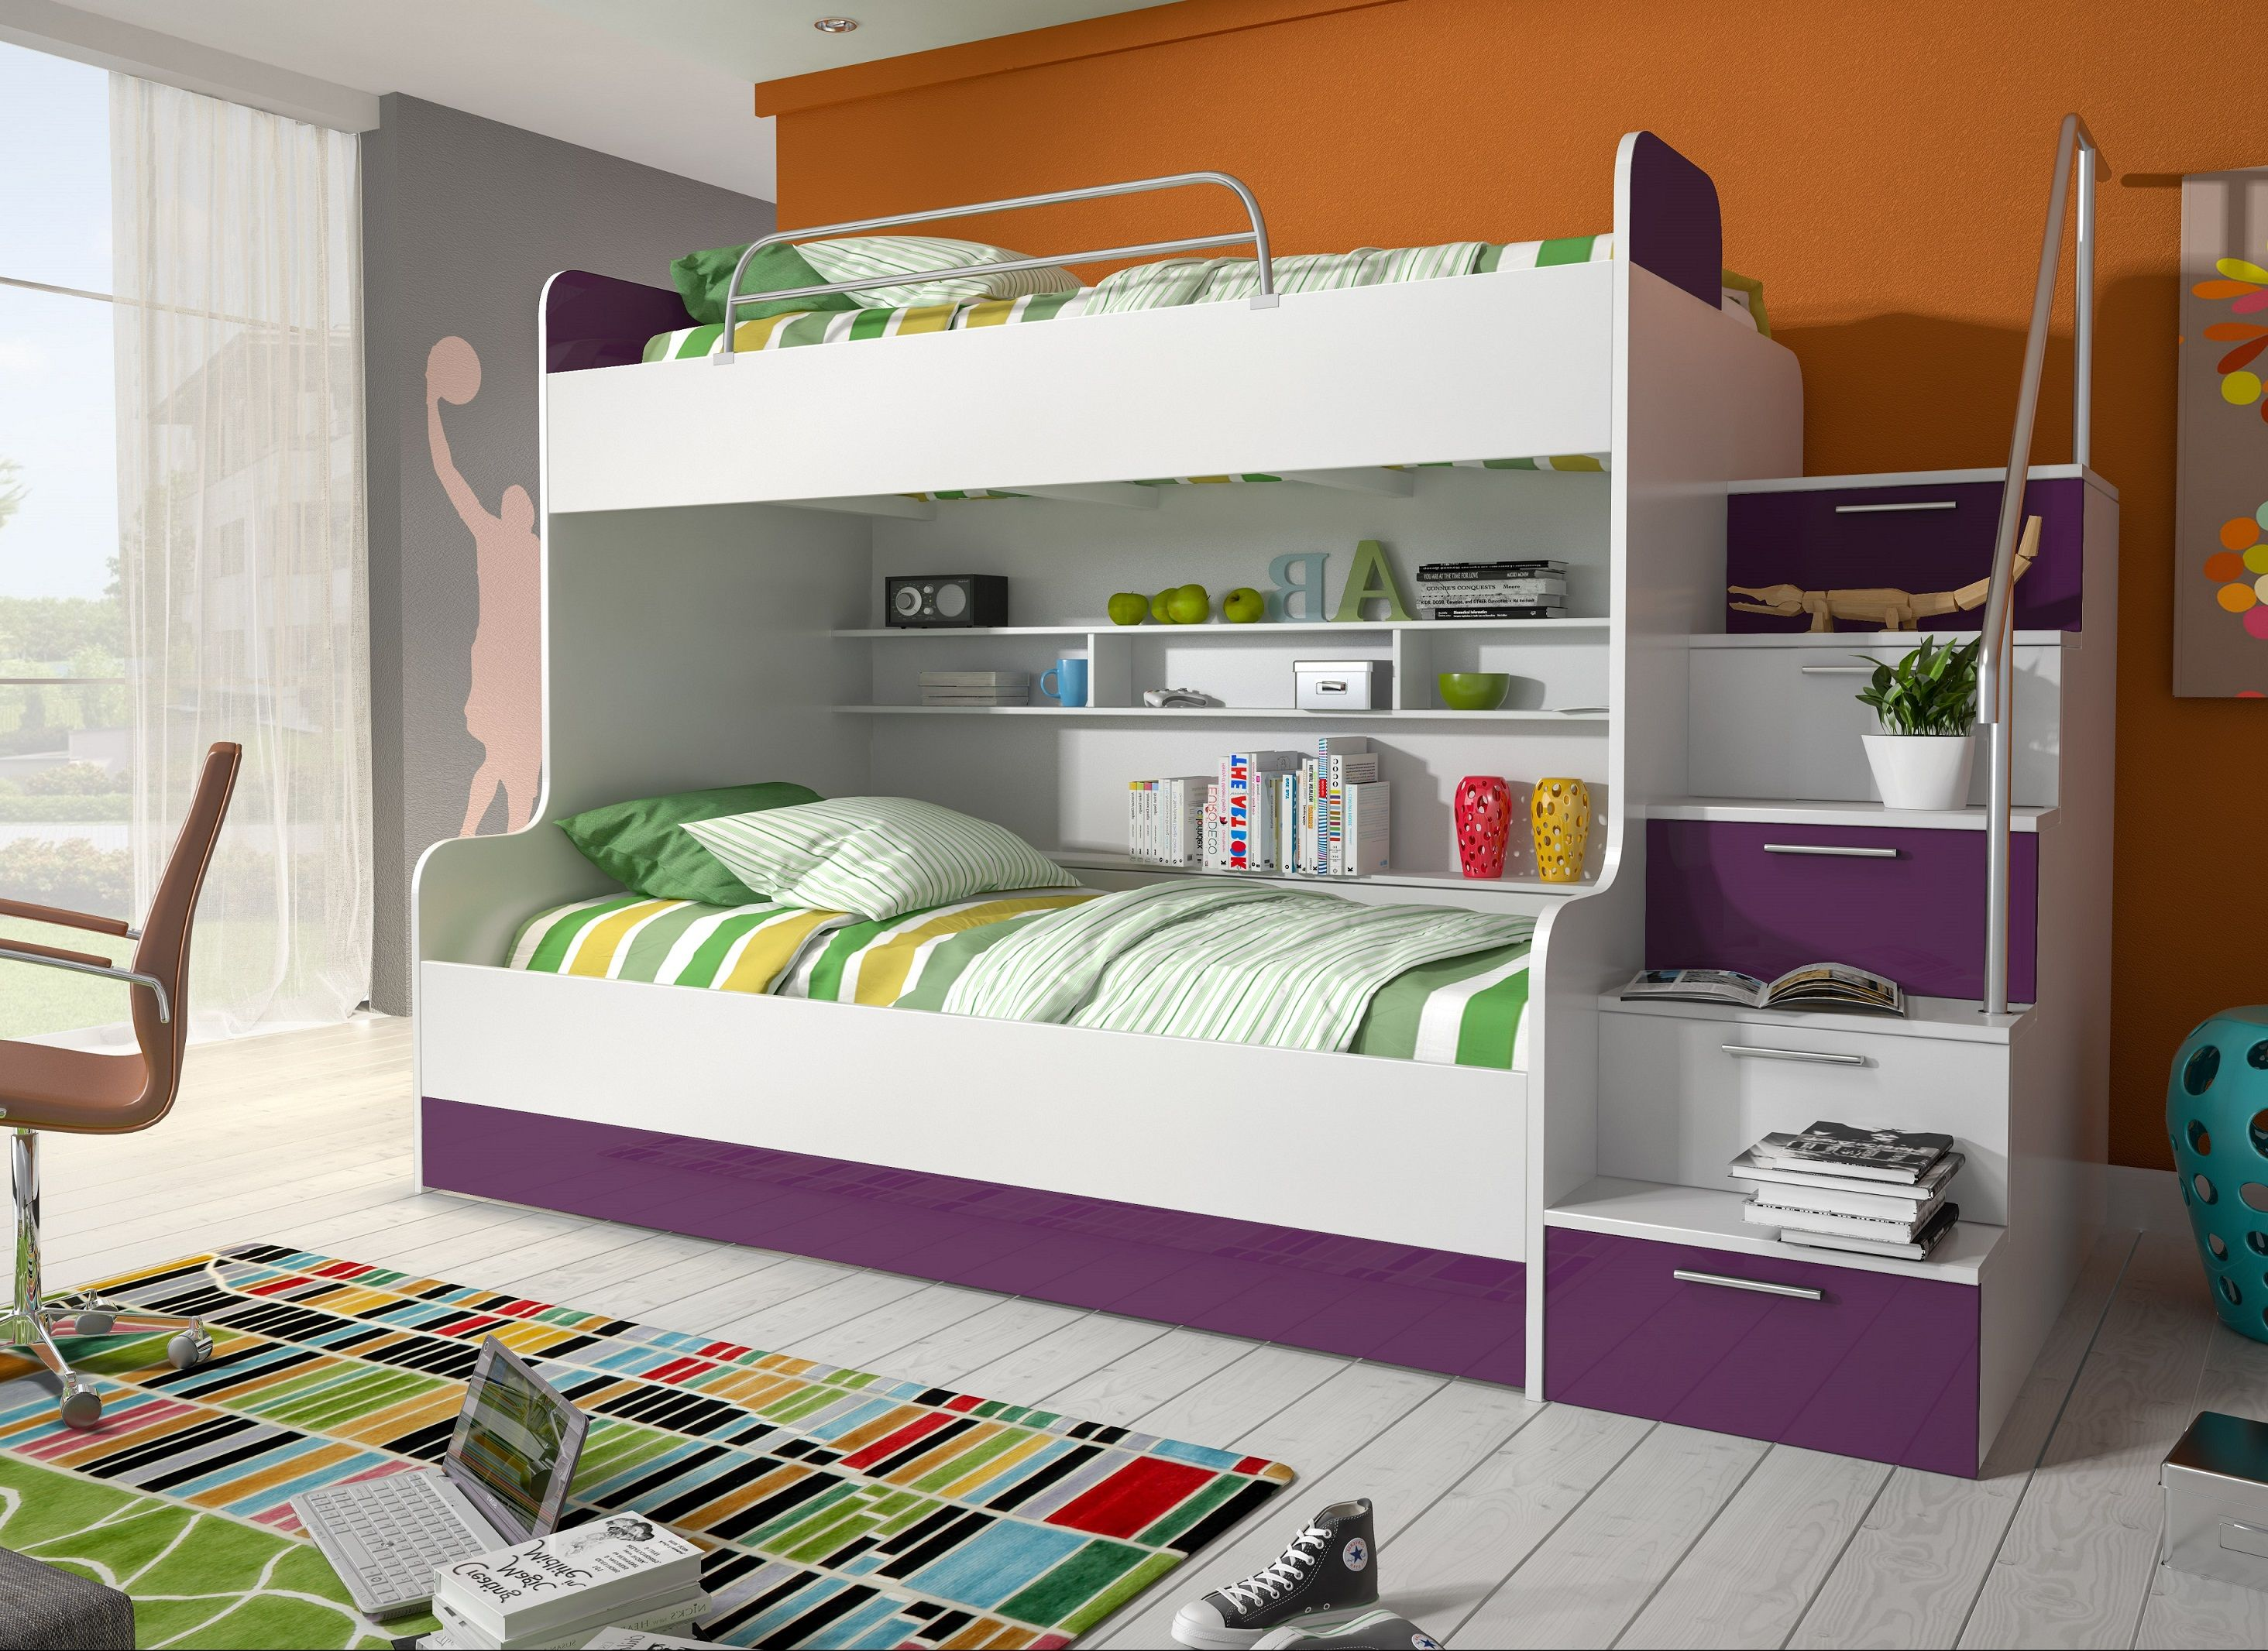 etagenbett kinderbett lila mit seitlicher treppe rechts kinderzimmer kinder bett bett und. Black Bedroom Furniture Sets. Home Design Ideas